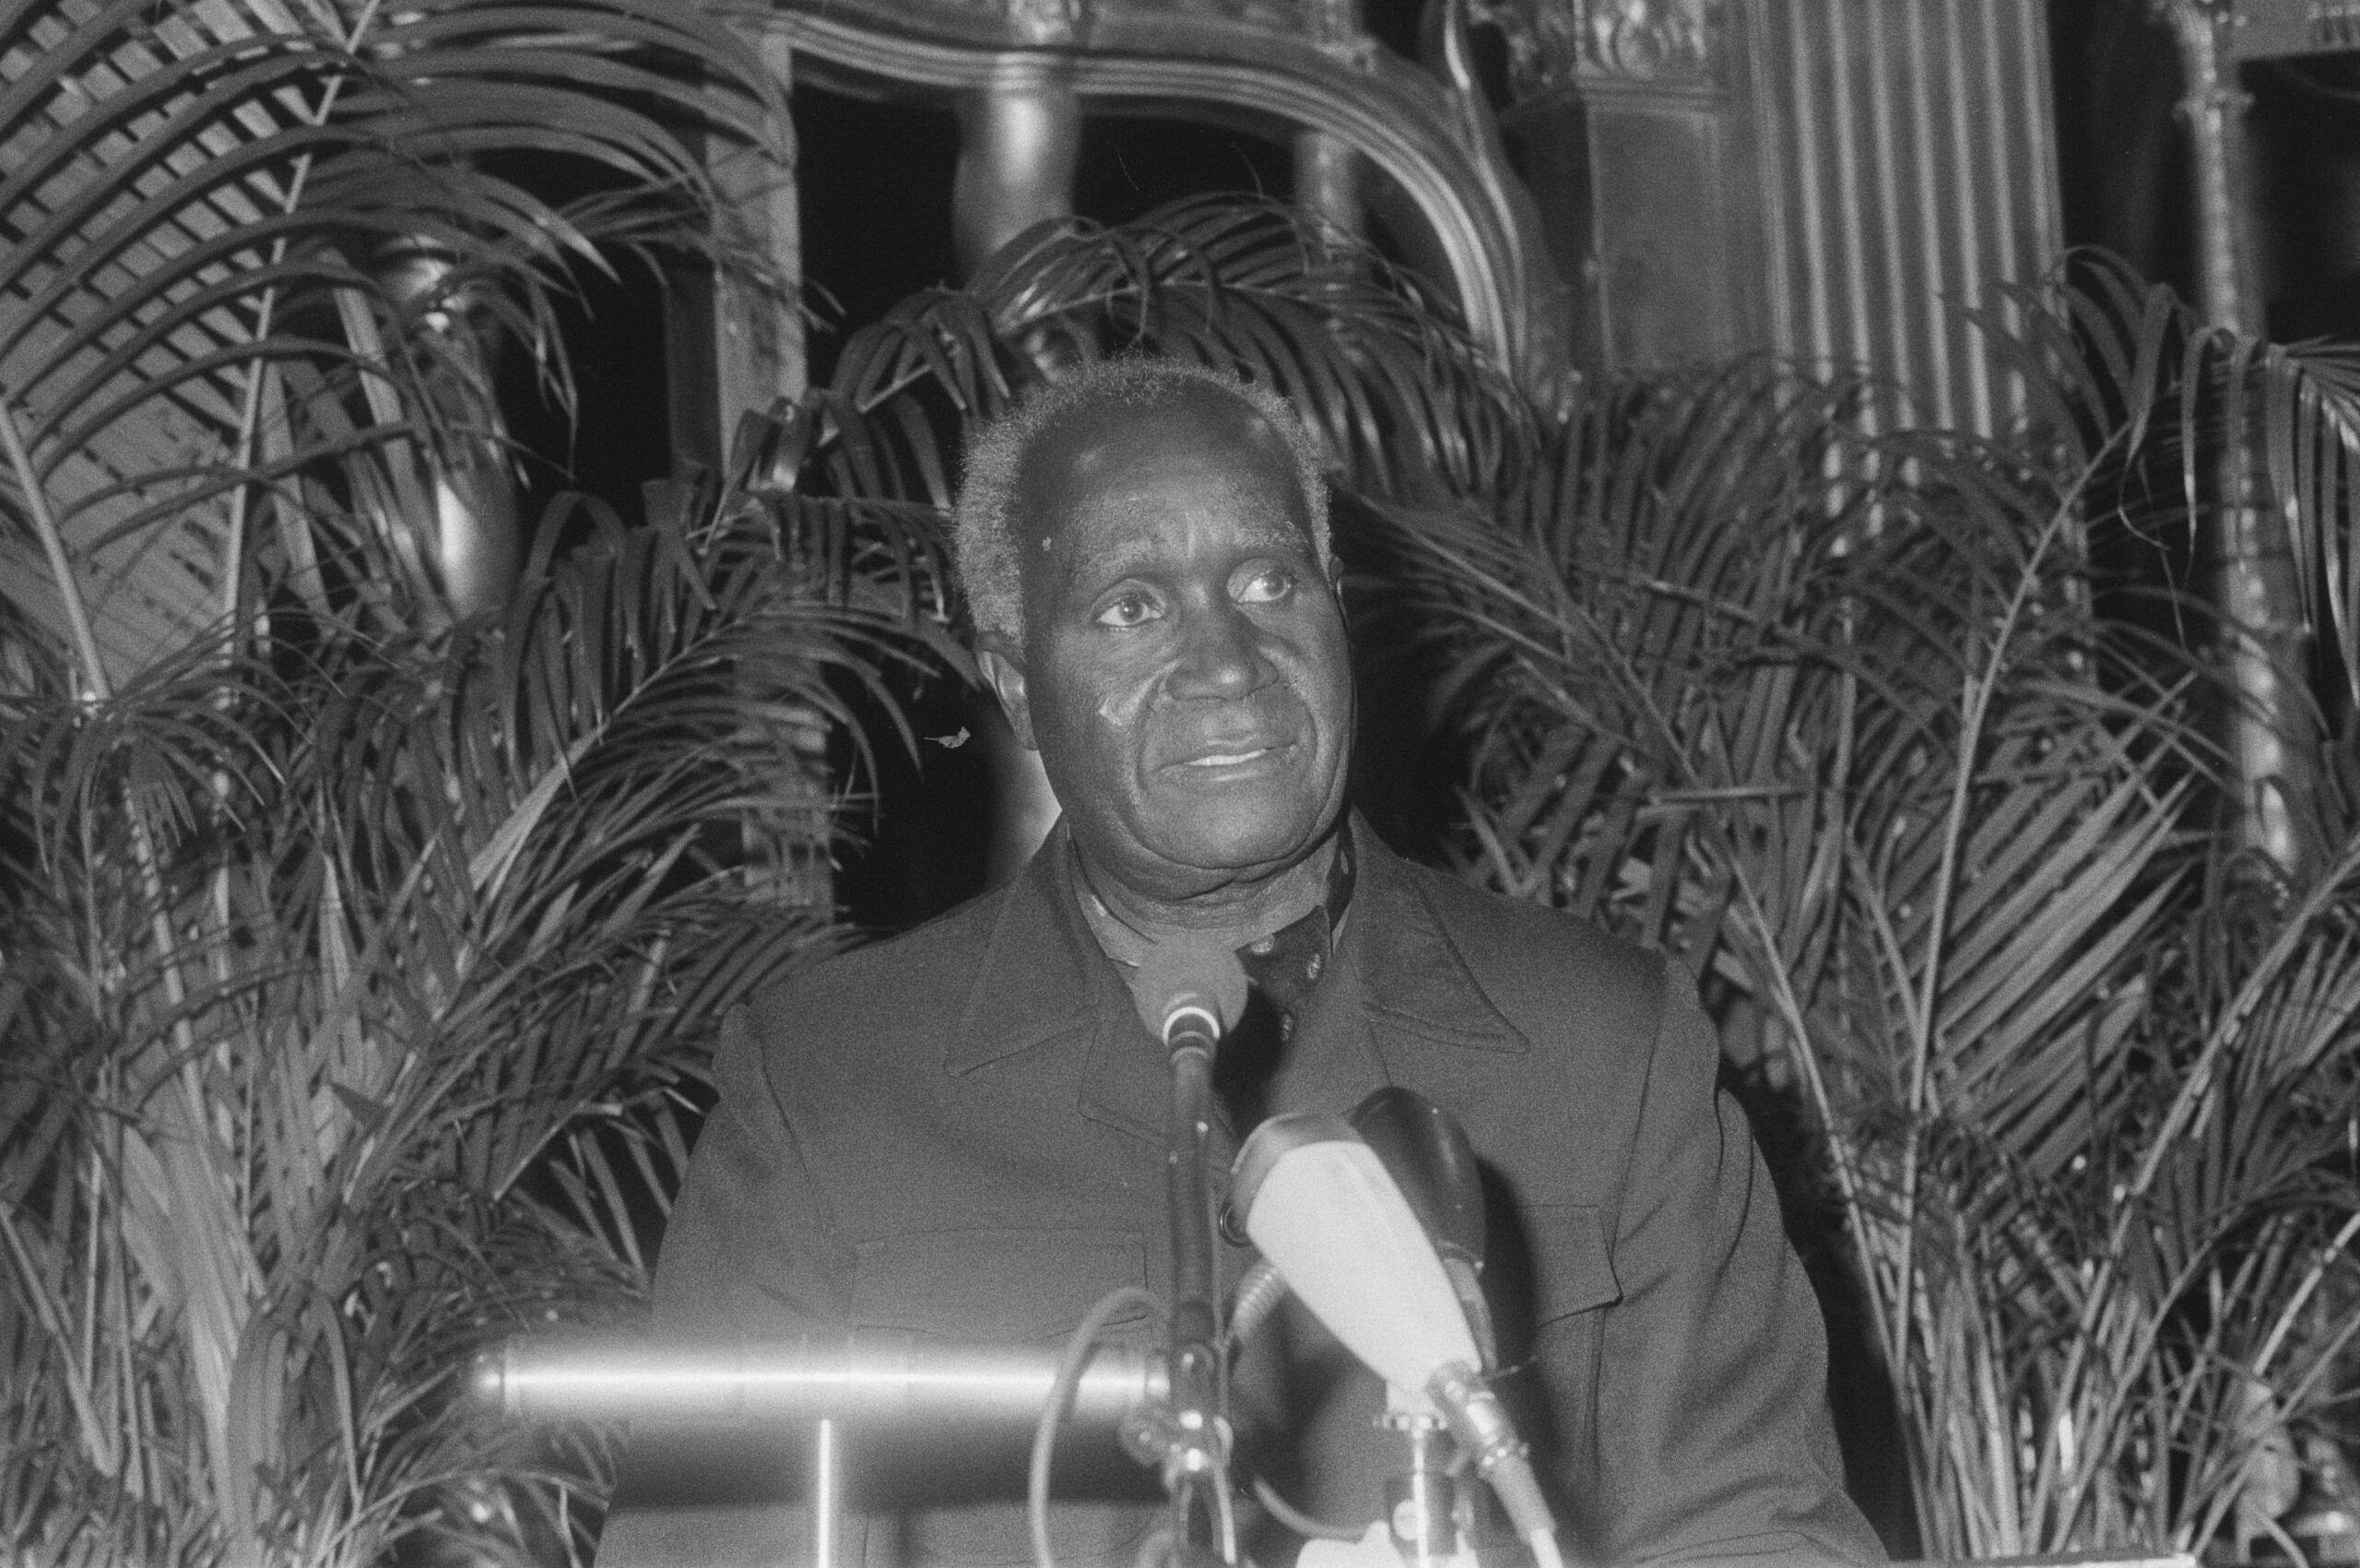 A Nation Mourns, His Excellency Dr. Kenneth David Kaunda, First President of the Republic of Zambia